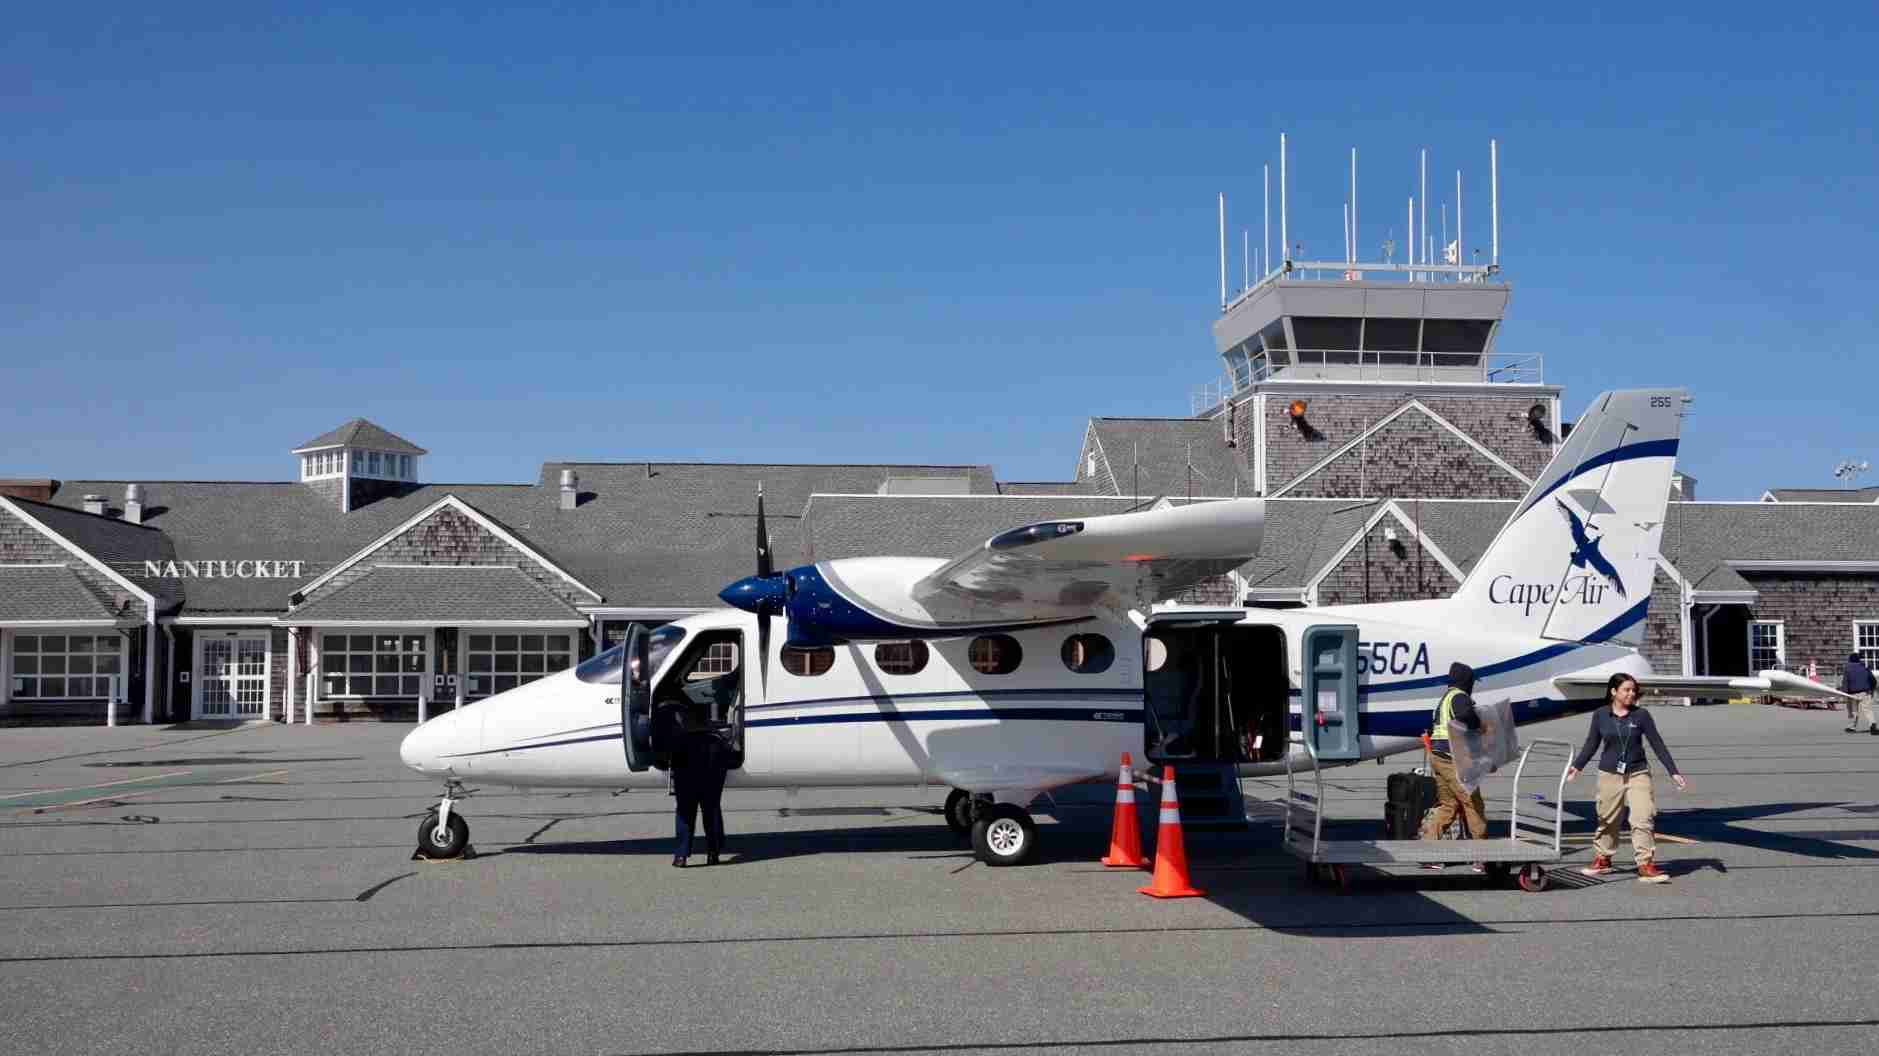 A Cape Air Traveller on the ramp at Nantucket Memorial Airport. (Photo by Edward Russell/TPG)